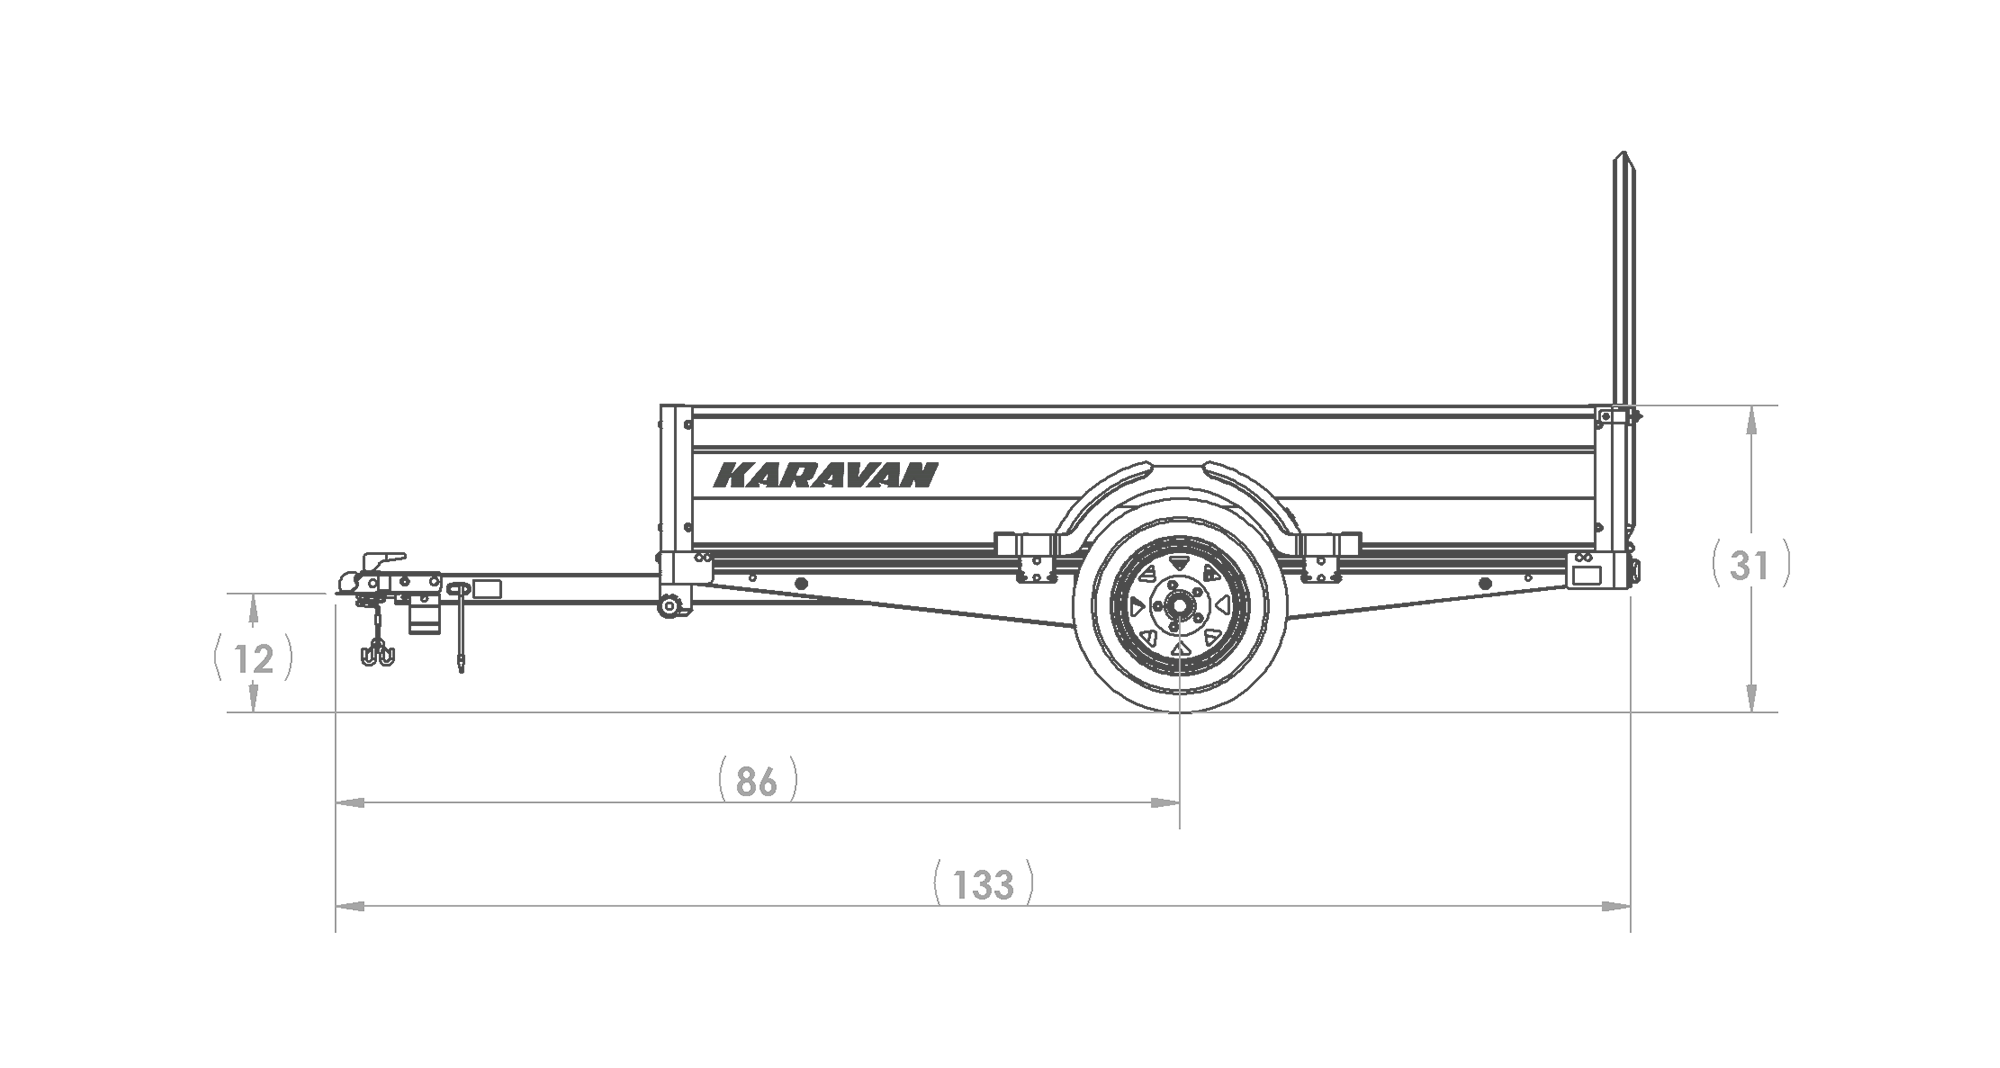 Karavan Trailer's 4.5 x 8 Ft. Anodized Aluminum Utility Trailer, model number MFF-2200-56-LP, Side View Measurements